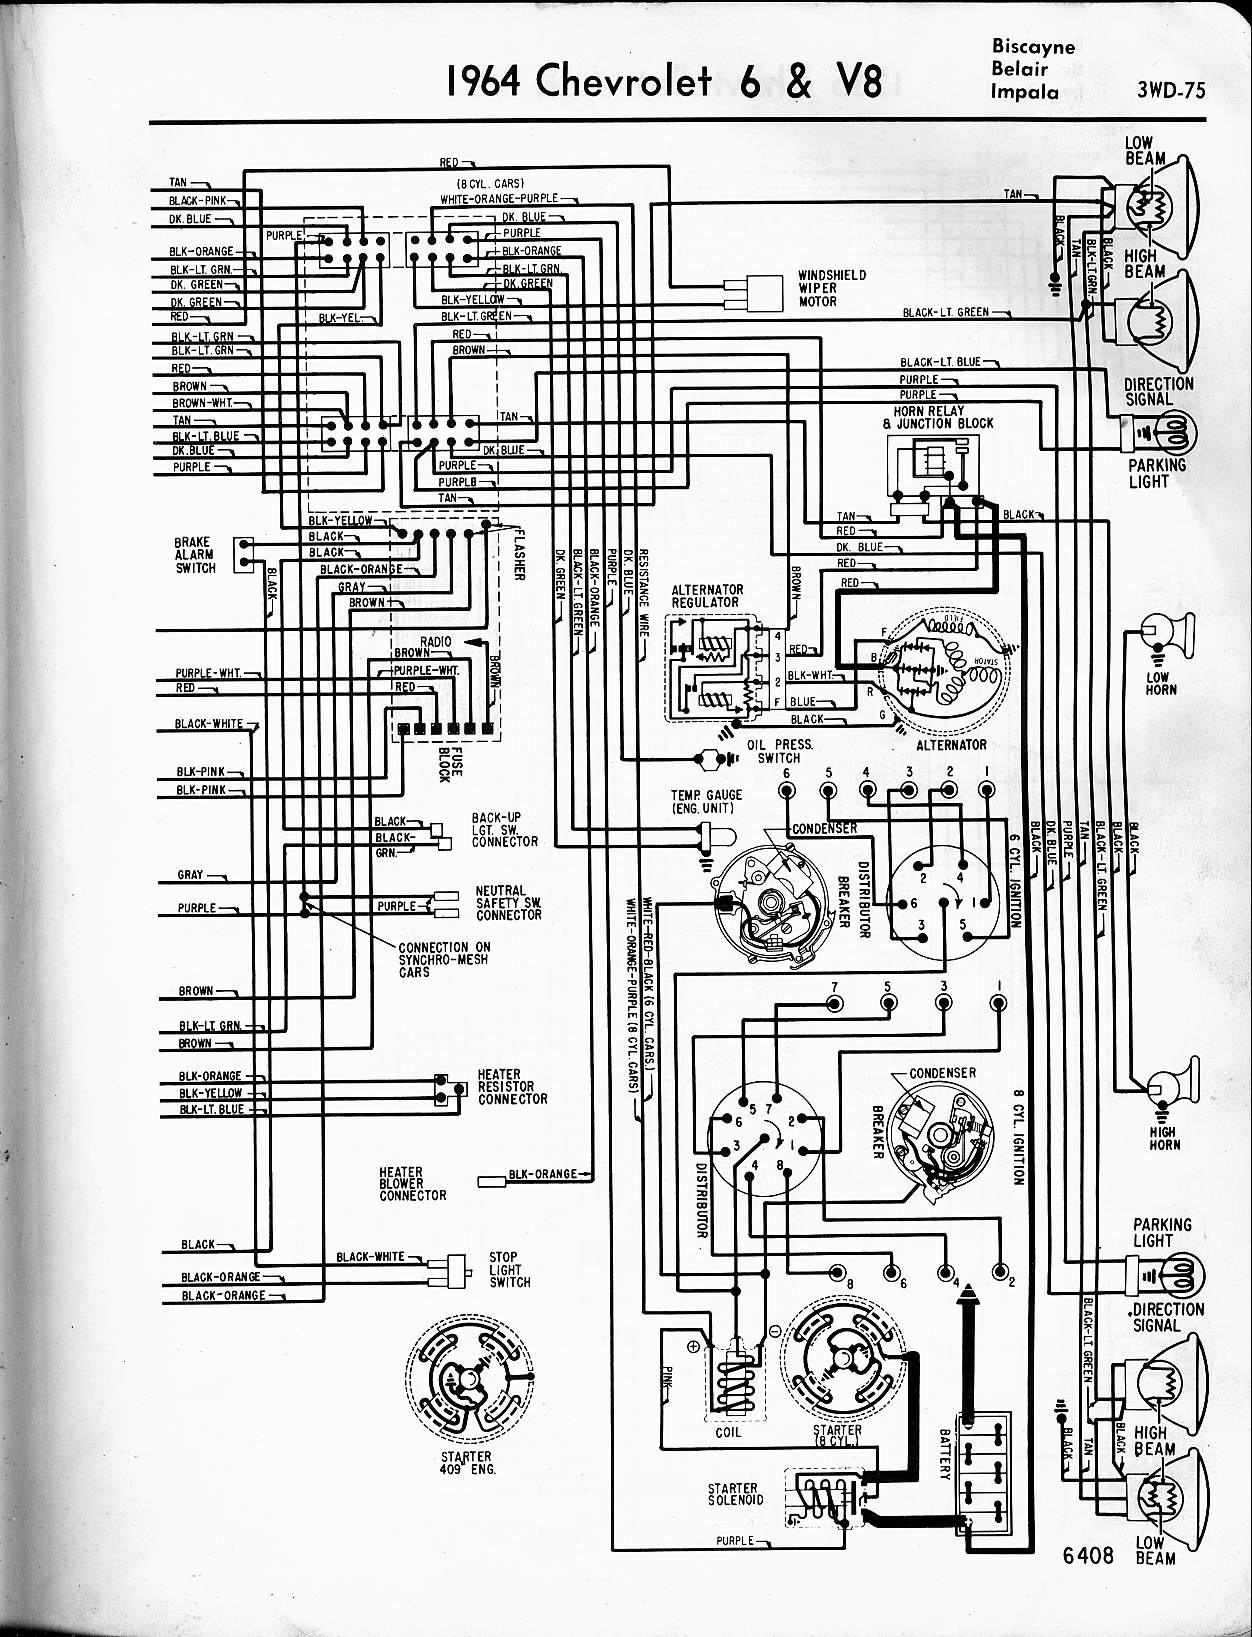 1964 Impala Ss Fuse Box Diagram Wiring Libraries Resistor Car Trusted Diagram1964 Panel Third